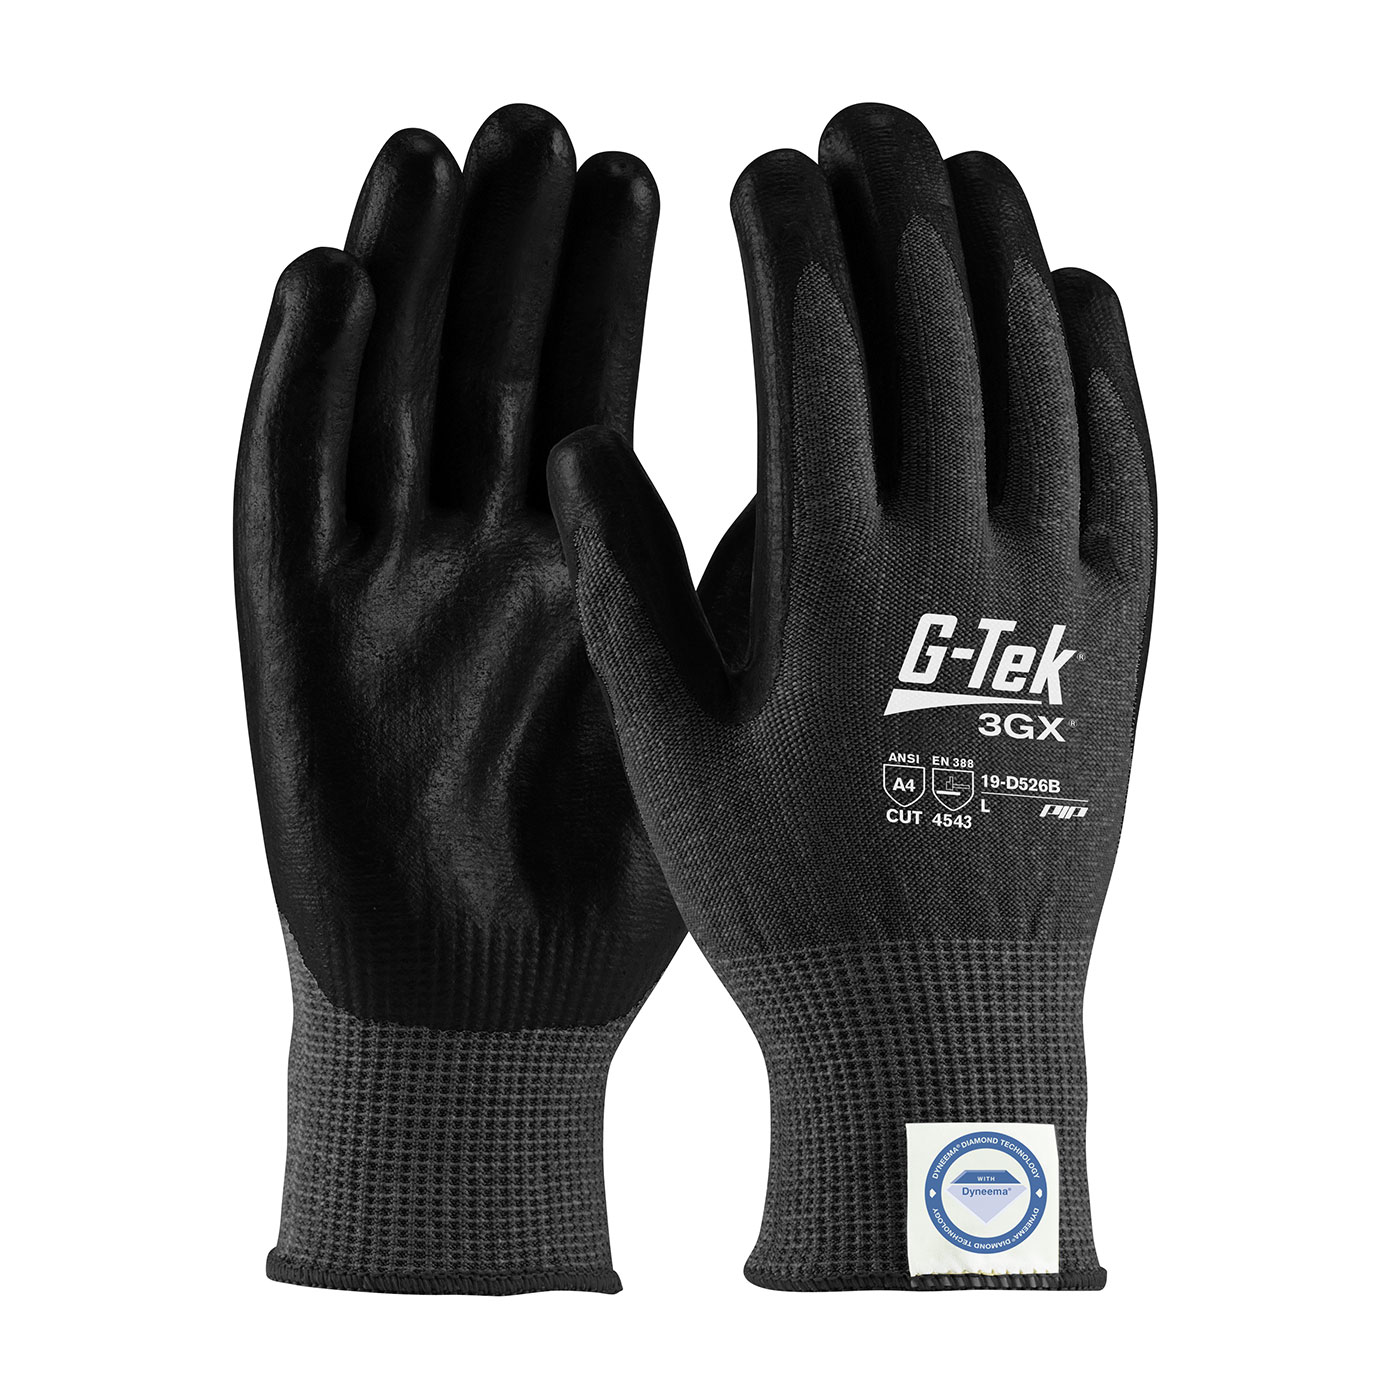 19-D526B PIP® G-Tek® 3GX® Black Seamless Knit Dyneema® Diamond Blended Glove with Polyurethane Coated Smooth Grip on Palm & Fingers - Touchscreen Compatible